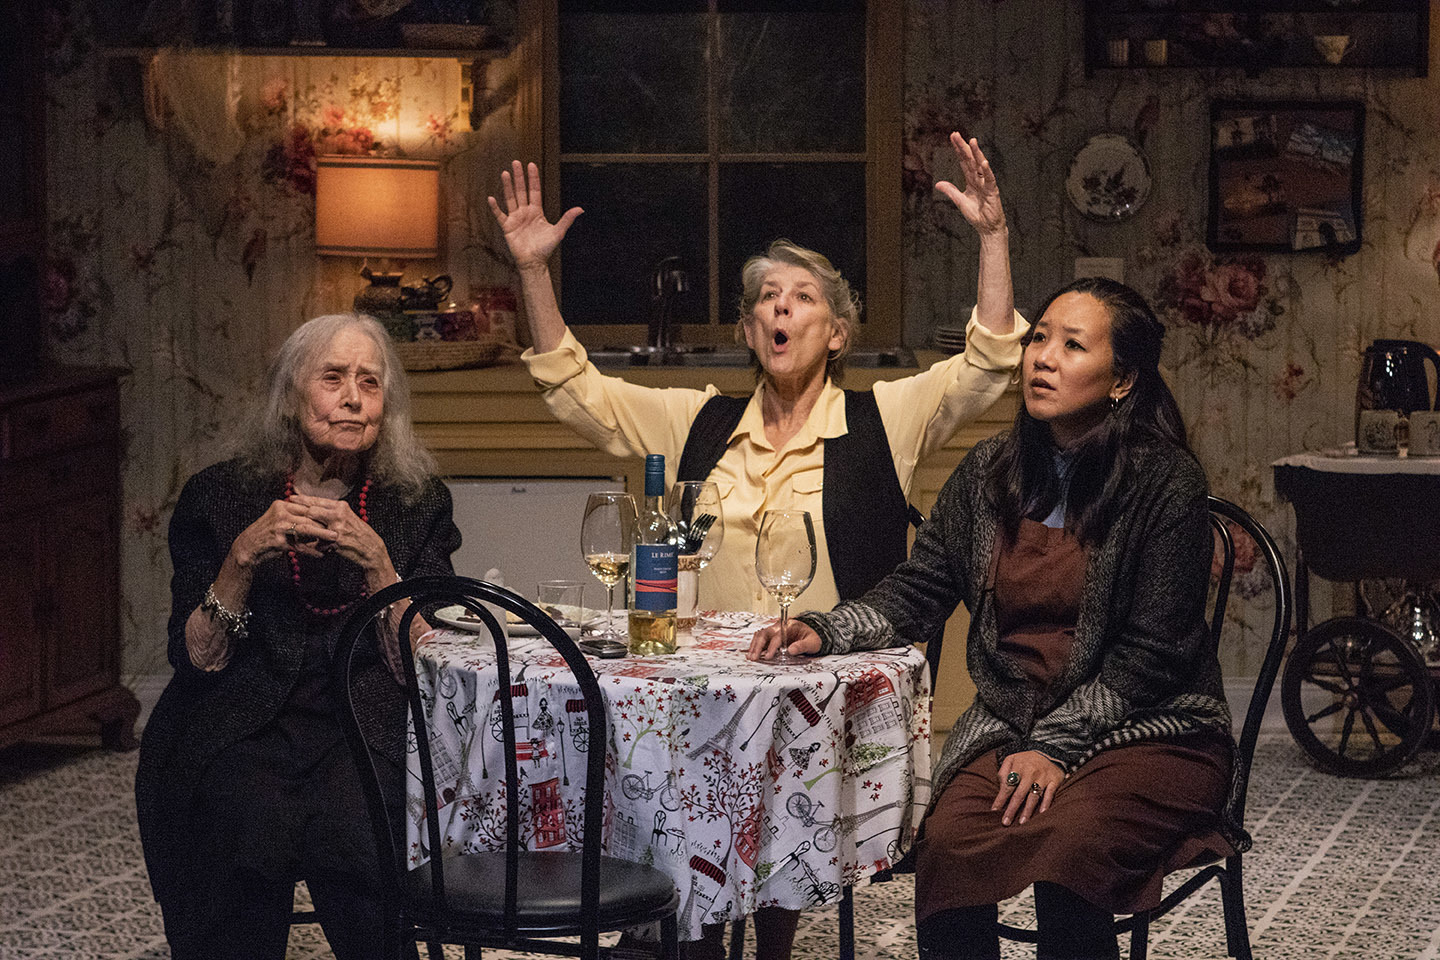 BWW Review: Dobama's JOHN Too Much To Do About Nothing